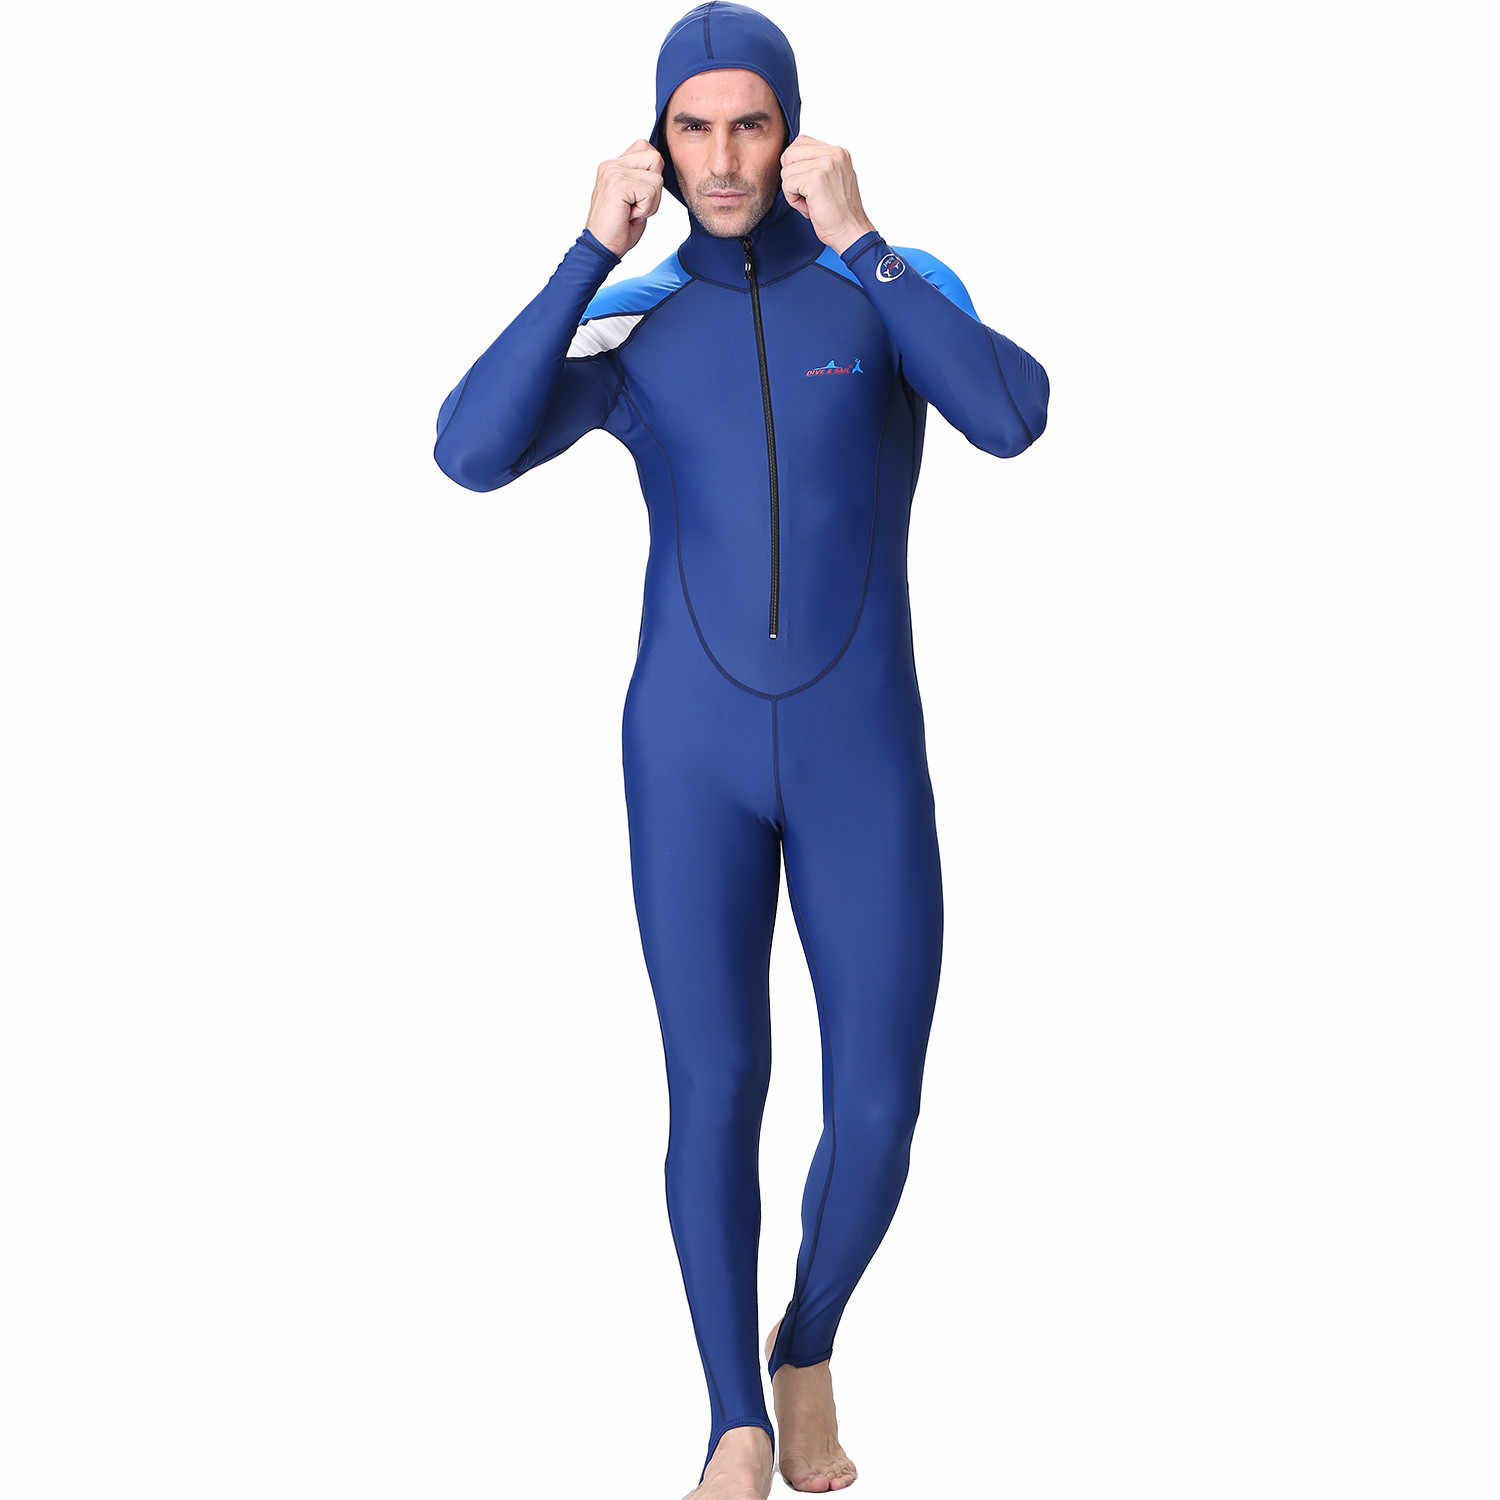 Mannen Hooded Duikpak Zwemmen Stinger Suit Dive Skin Snorkelen Surf Waterski Anti-Uv Dragen Full Body Met Caps kap Mannen vrouwen